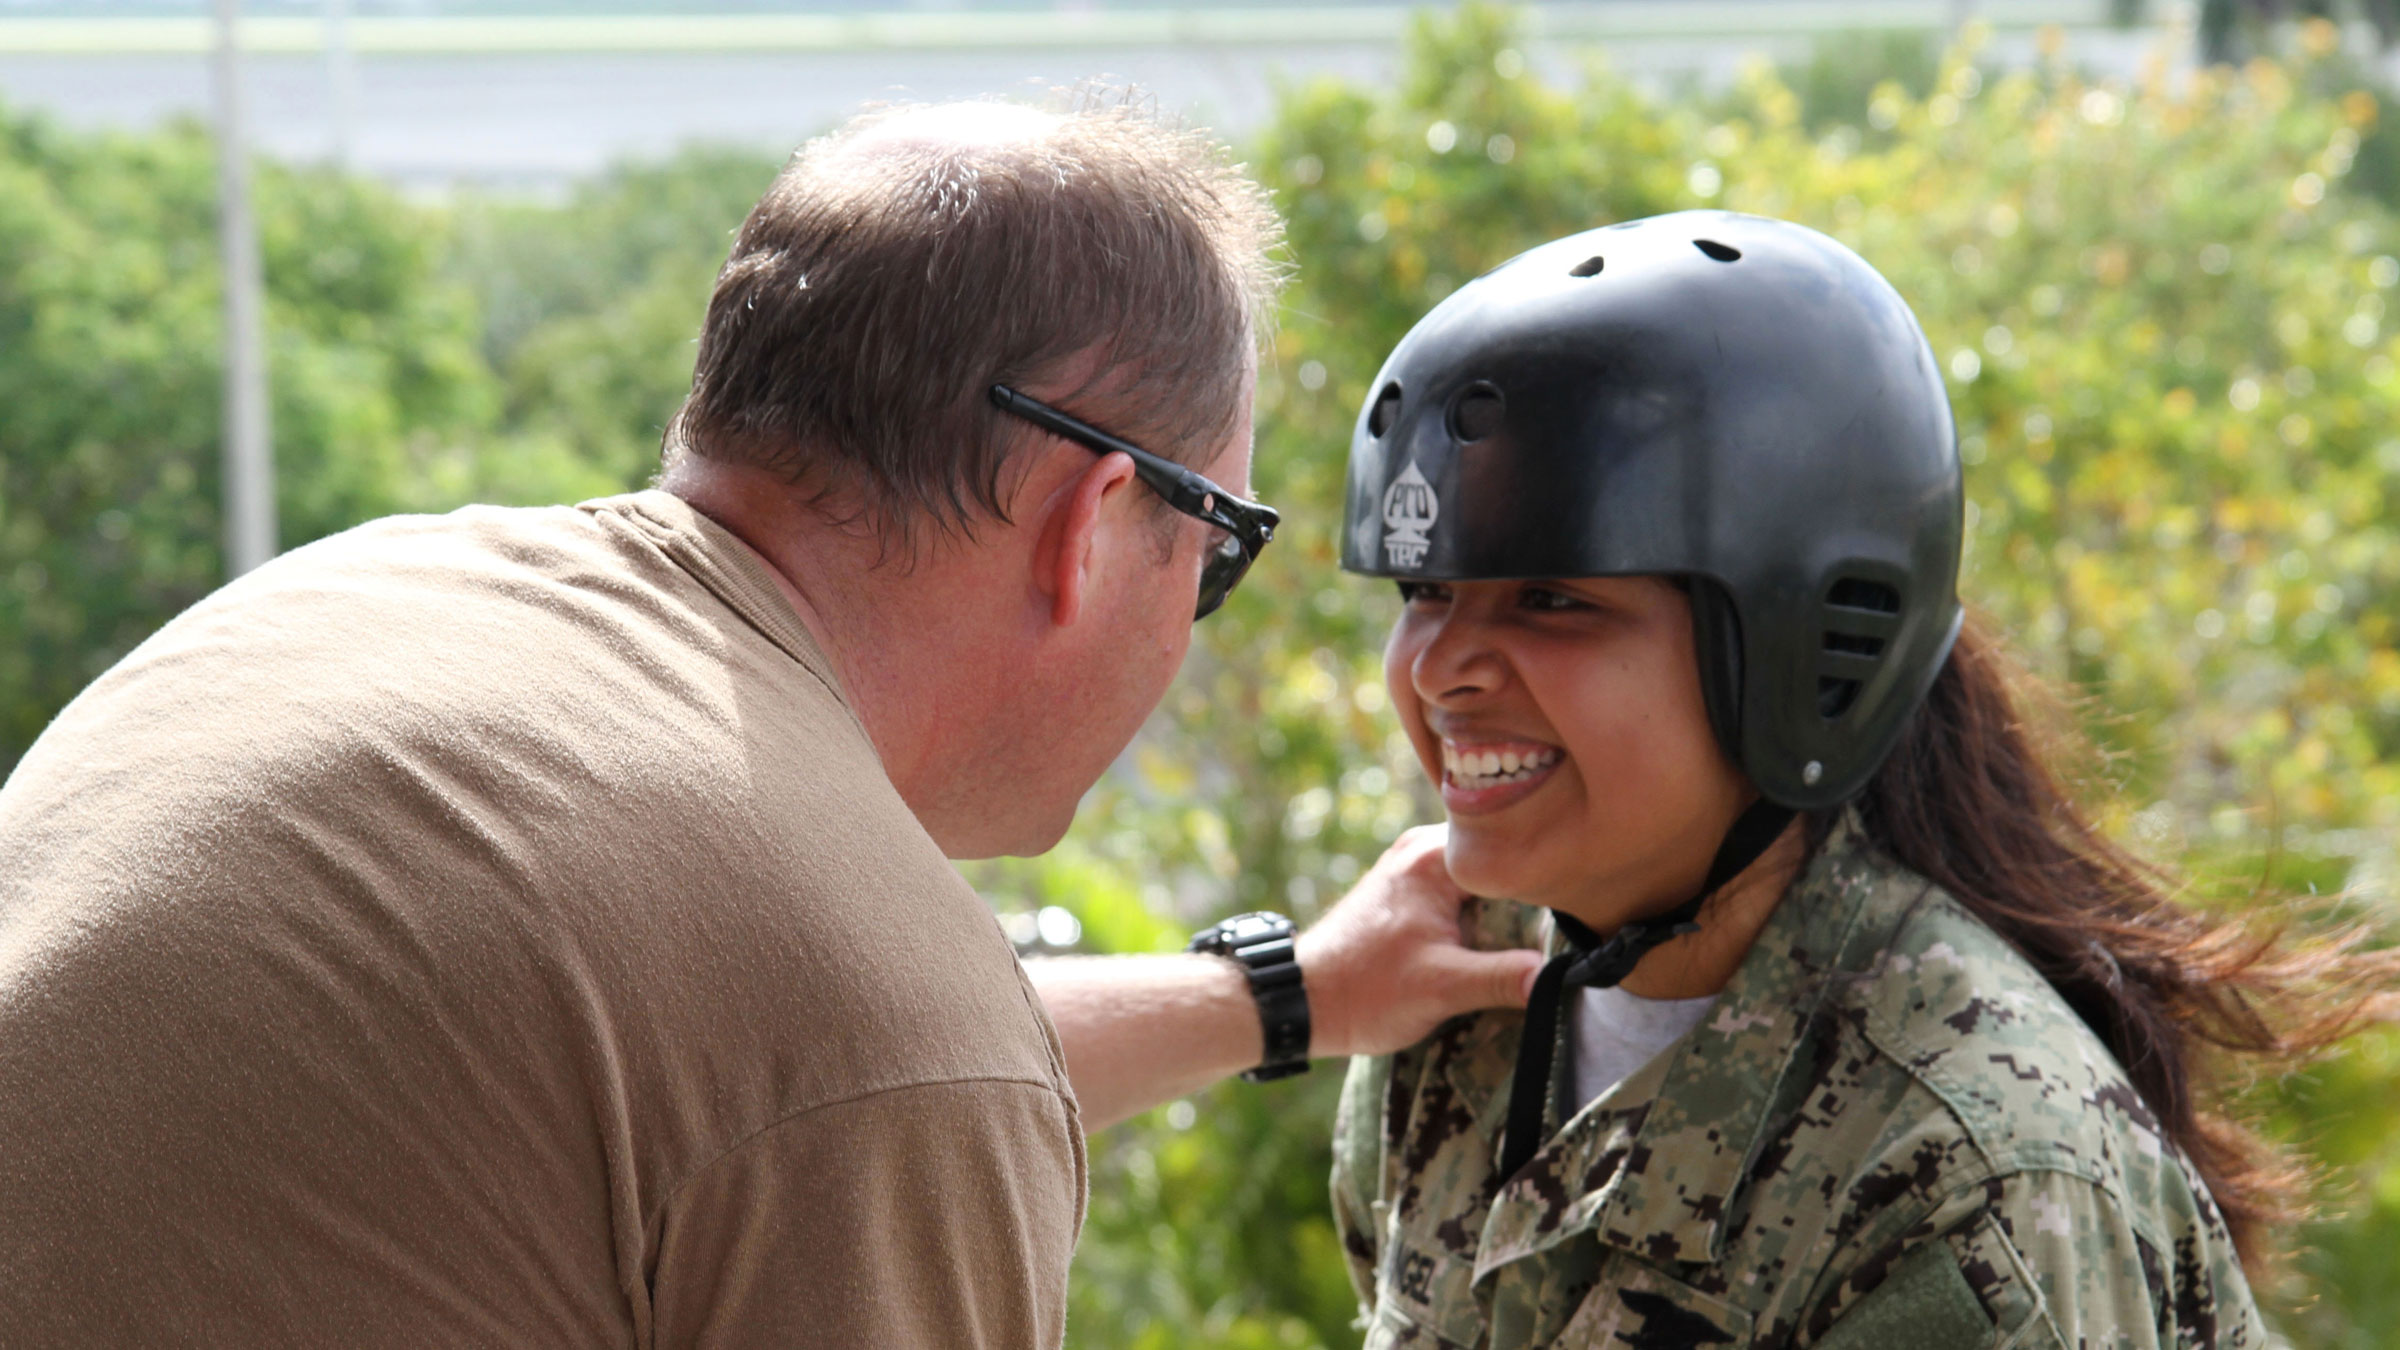 JROTC cadets take part in military training day at Homestead ARB